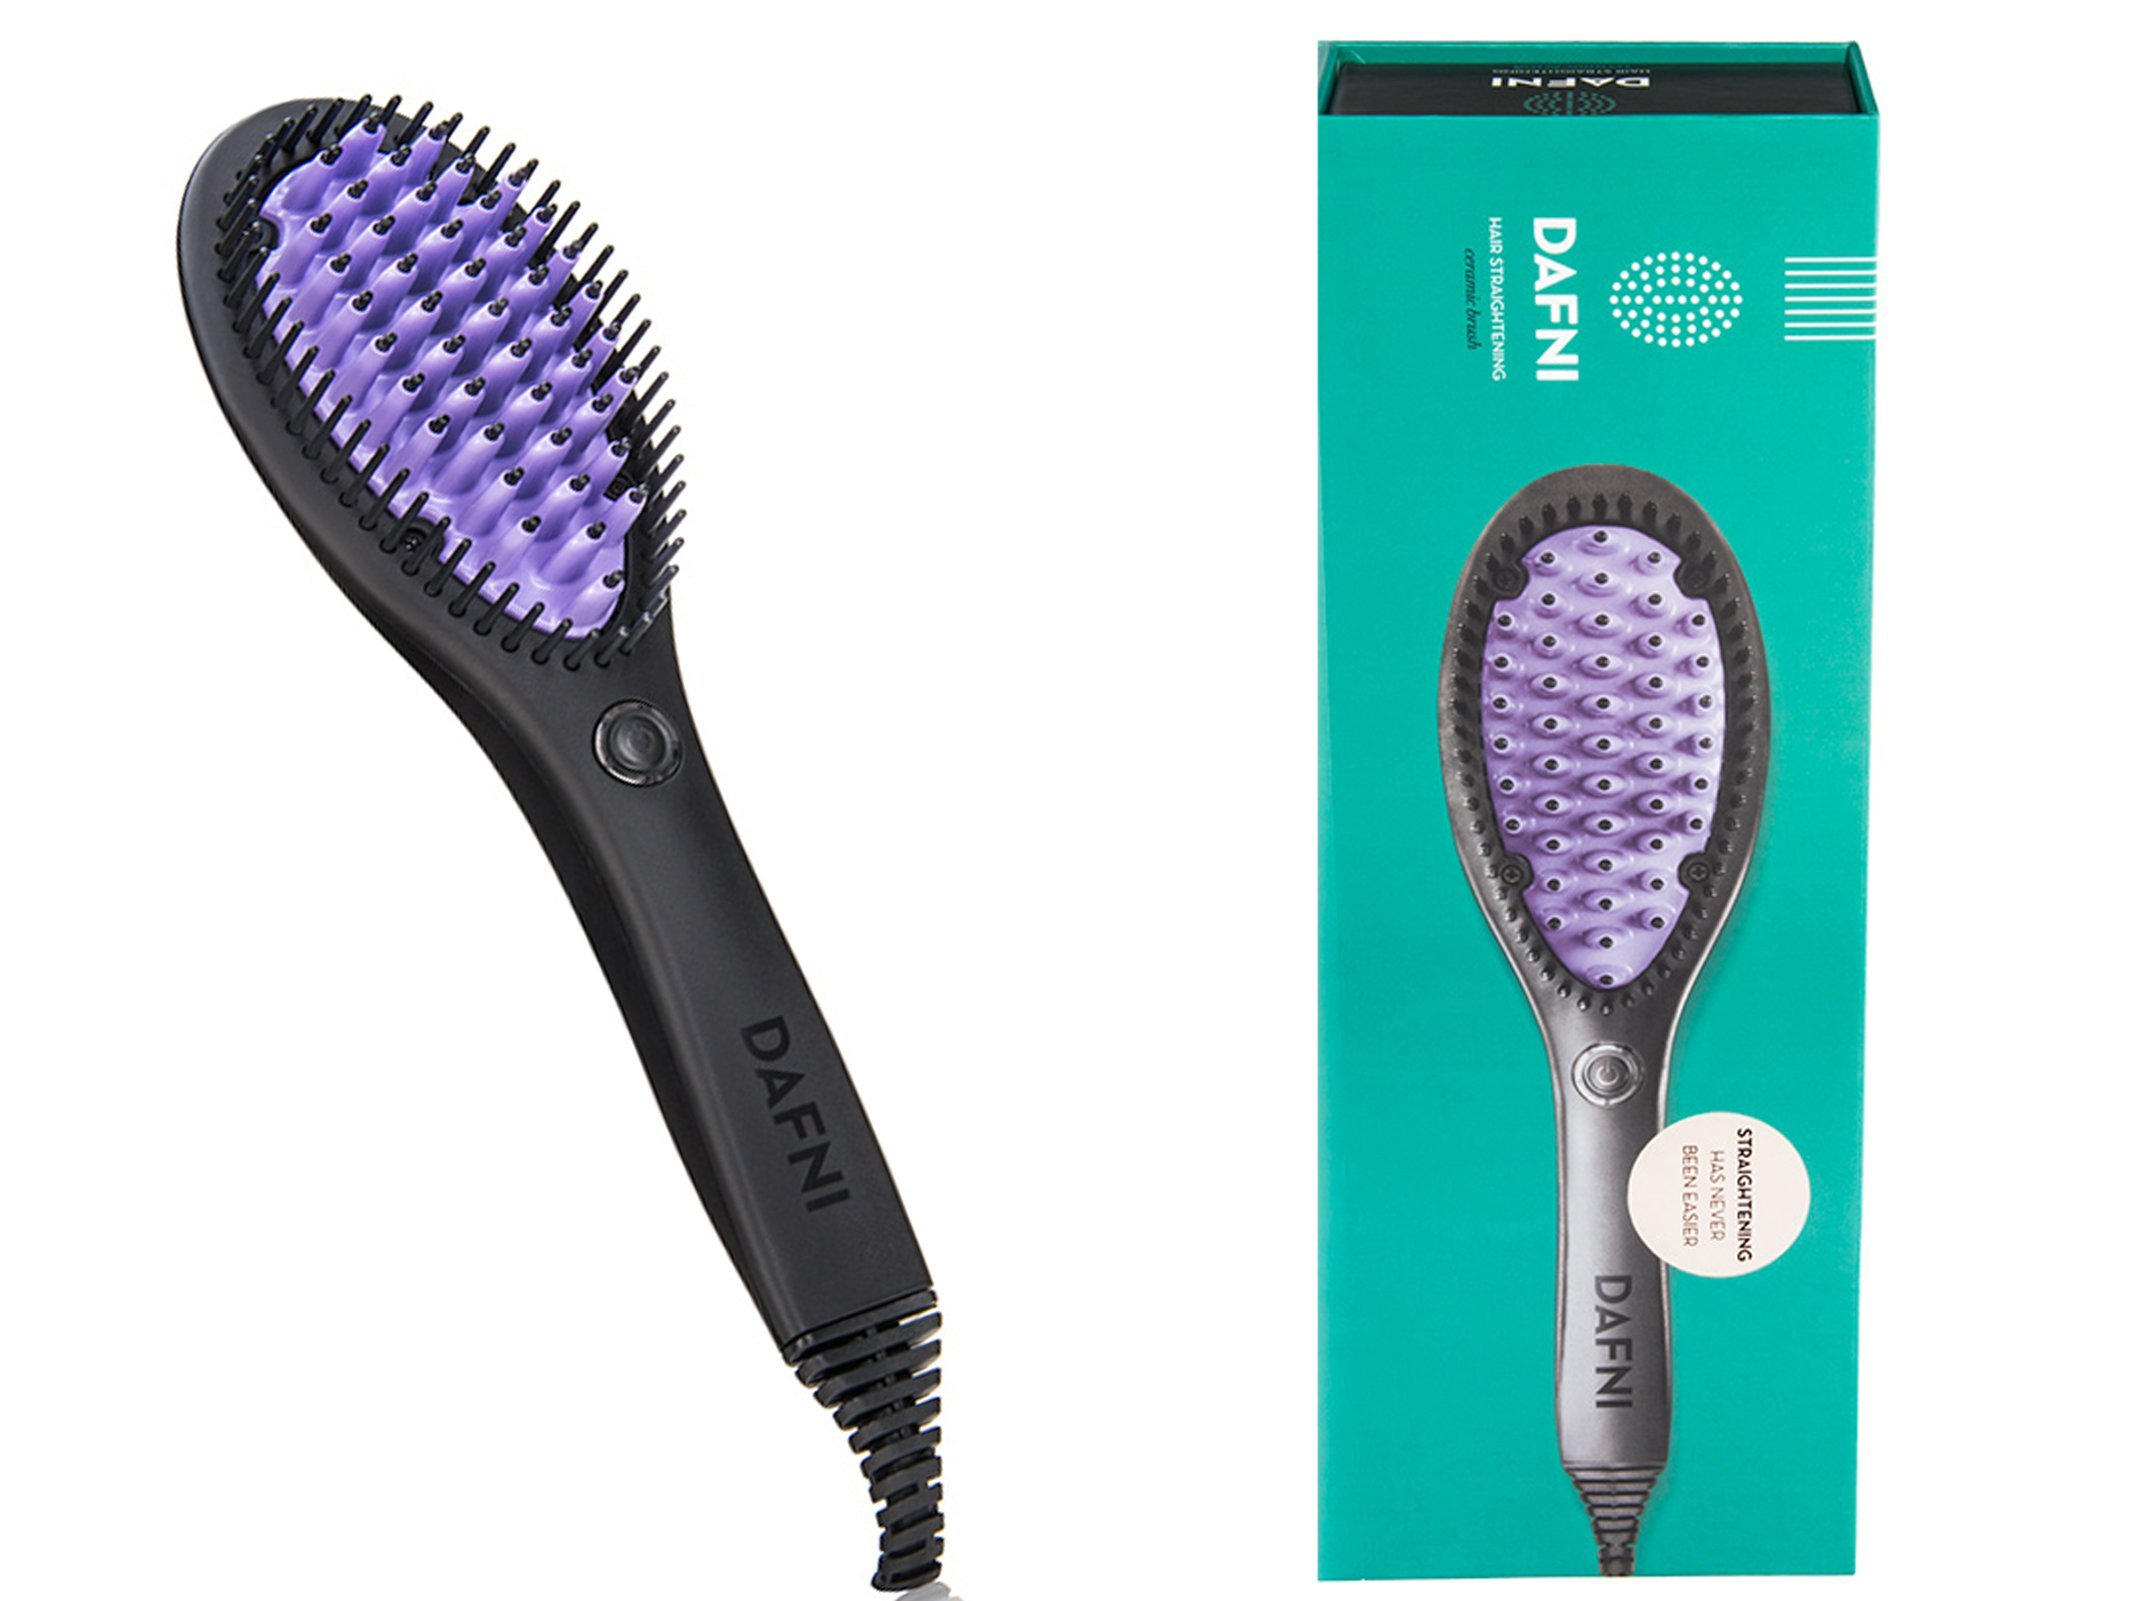 dafni hair straightening